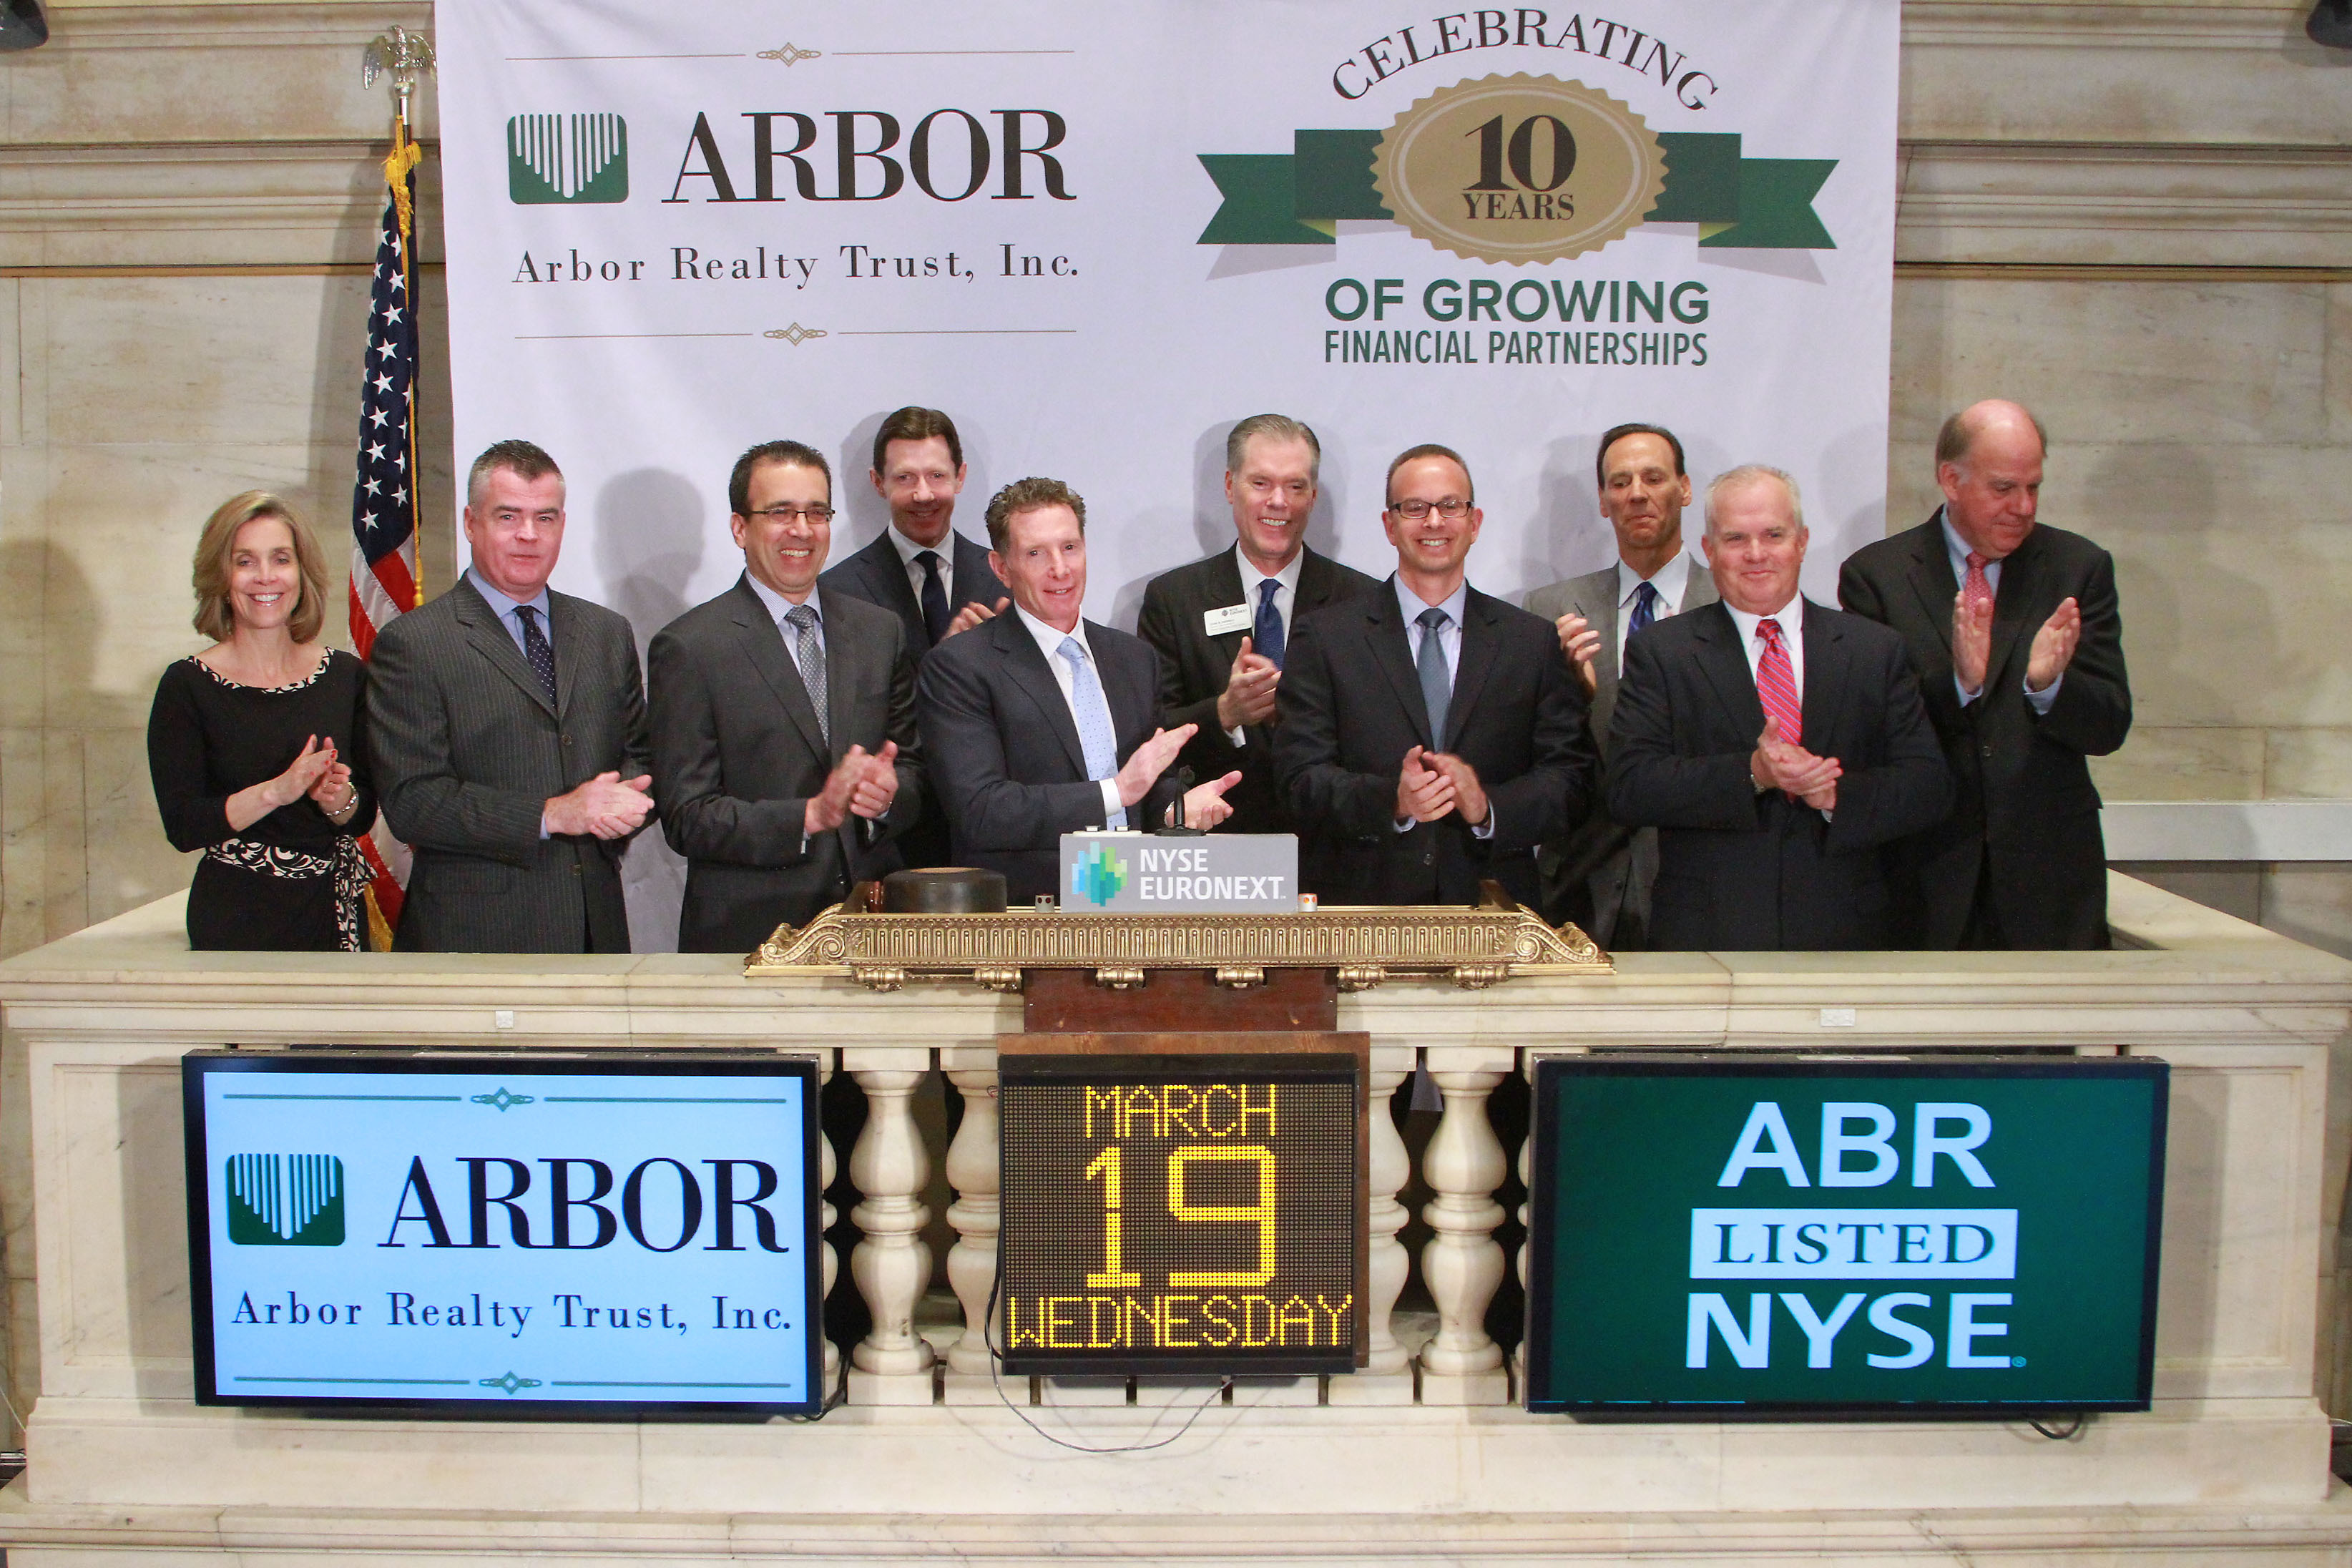 Arbor Realty Trust President and CEO Ivan Kaufman (center) and the company's executive management team celebrated the 10th anniversary of the REIT's public listing on the New York Stock Exchange by ringing the Opening Bell on March 19, 20l4. (Photo: Business Wire)